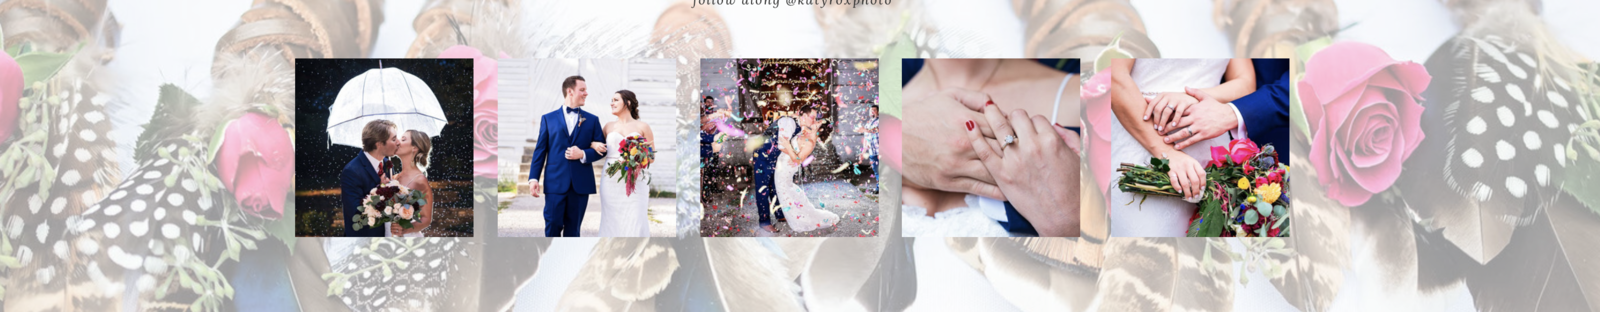 Katy Rox Wedding Photographer Instagram